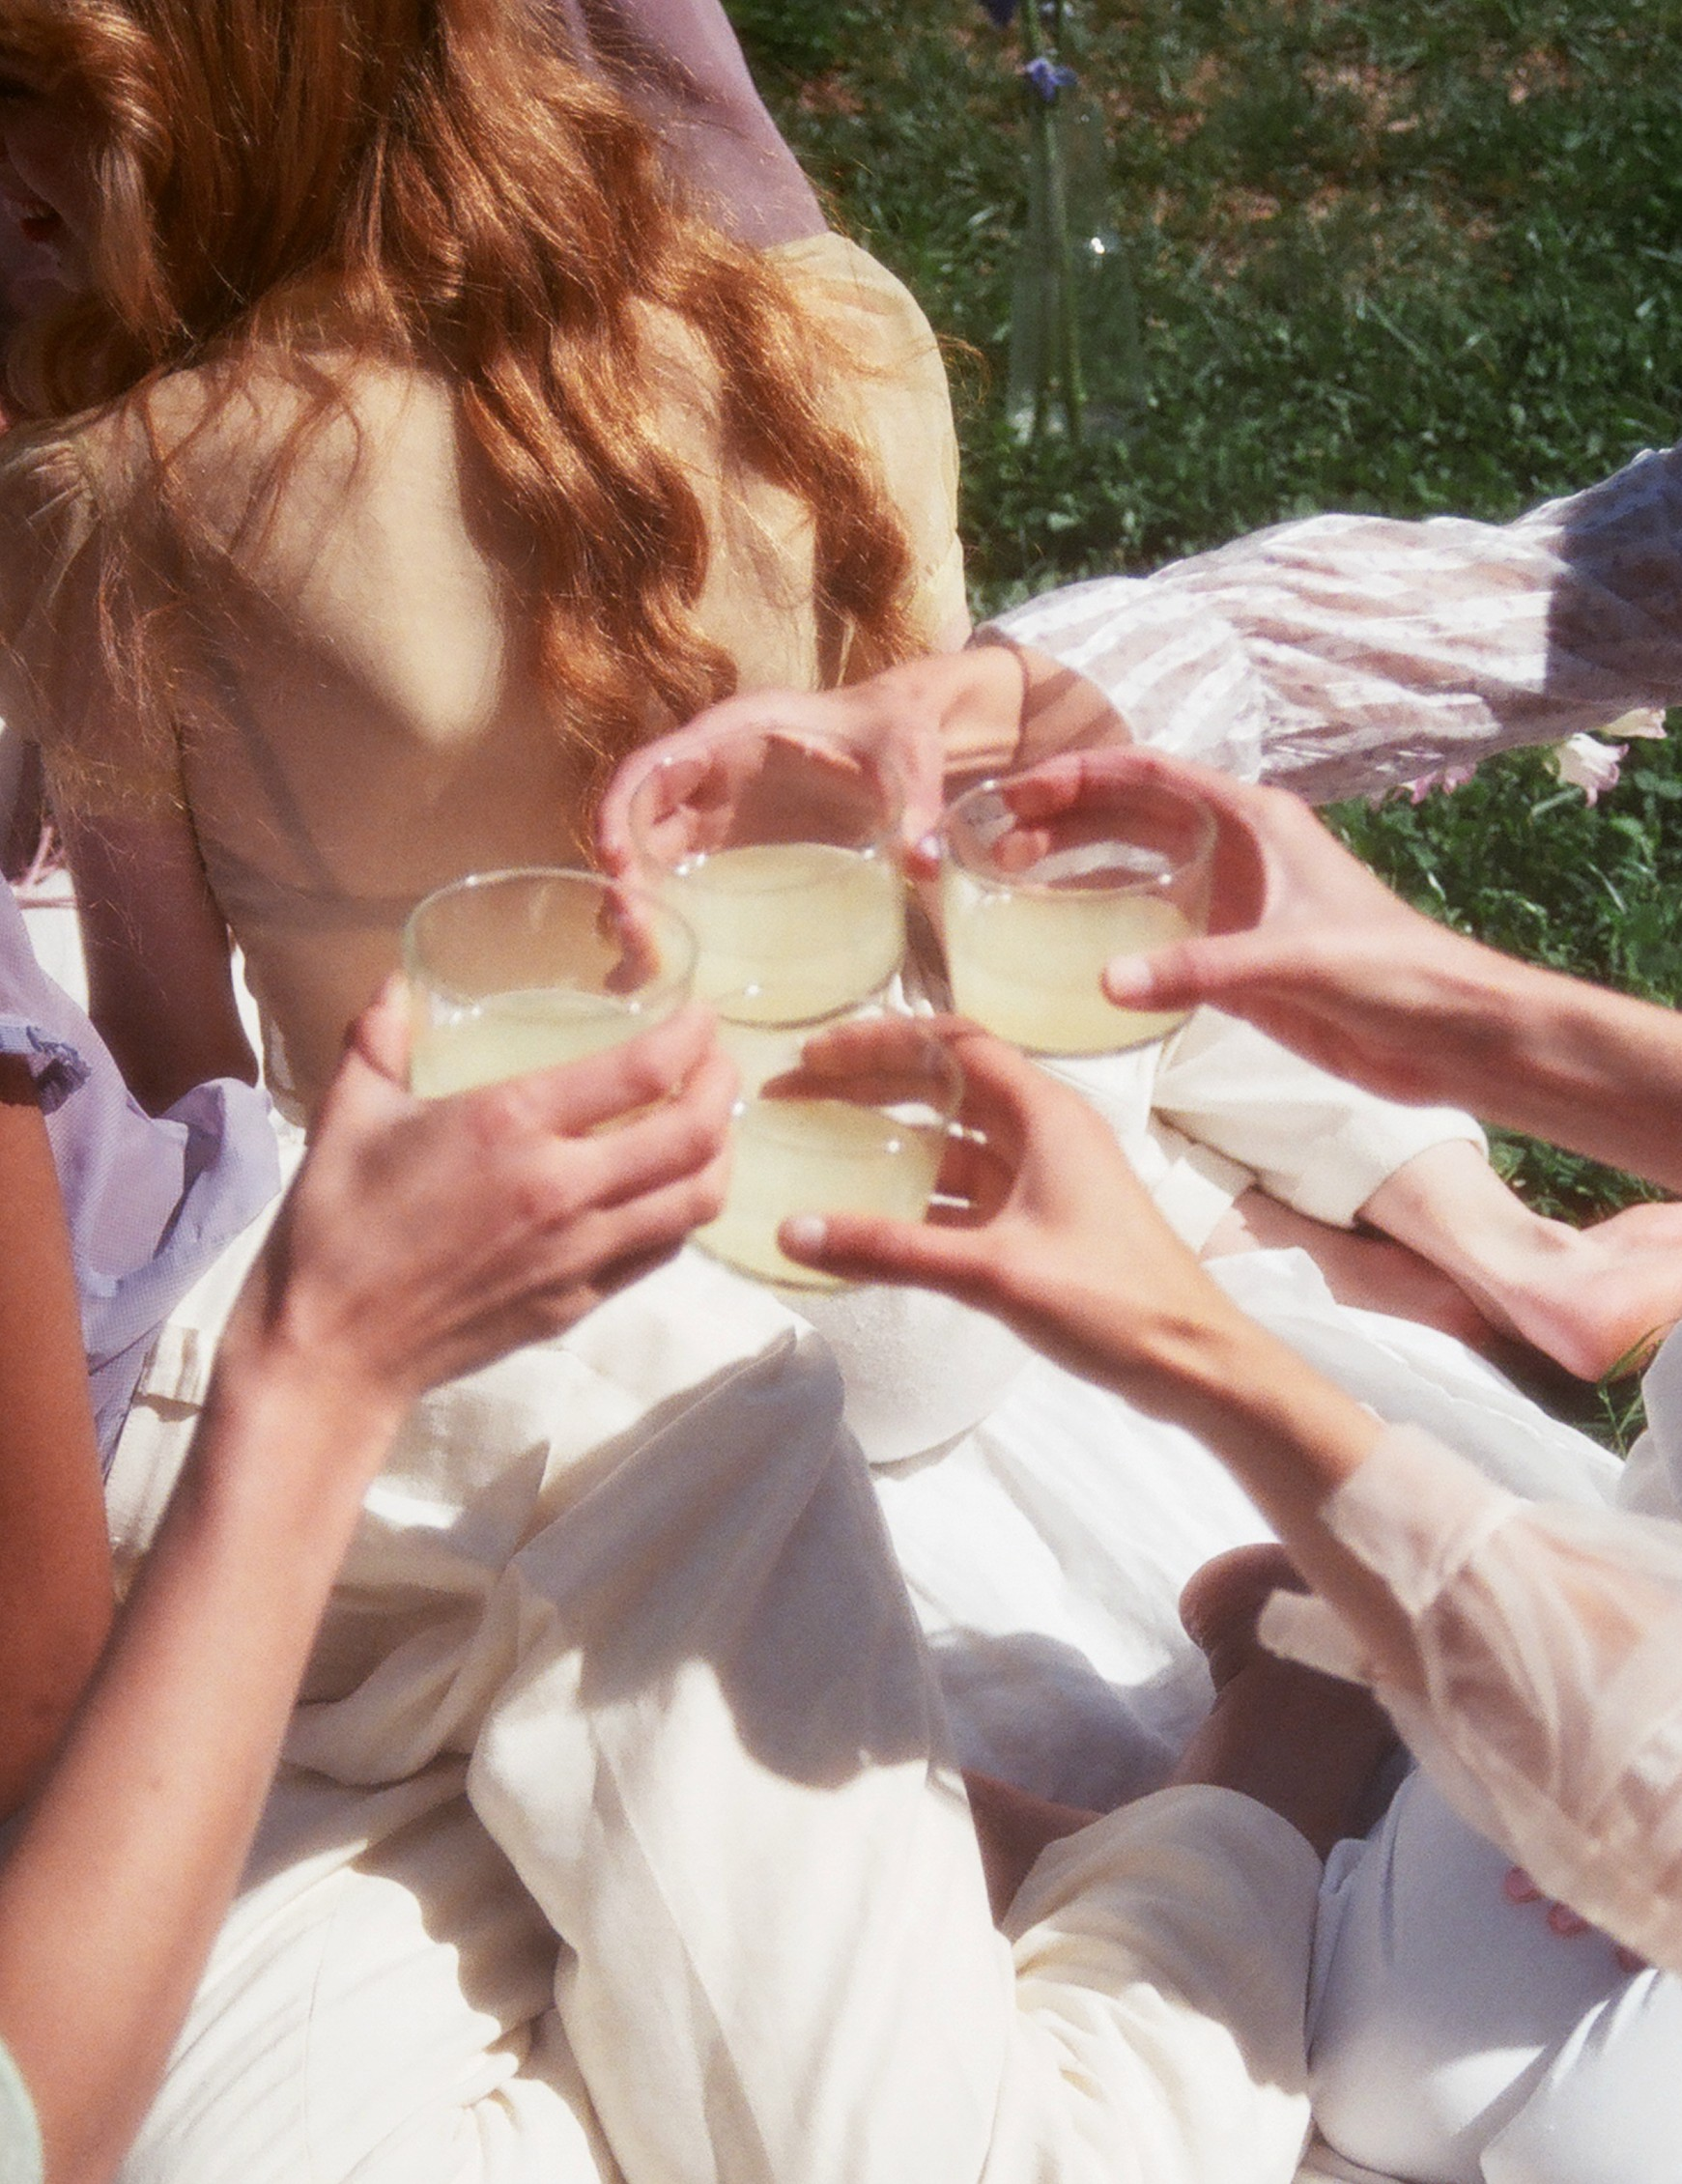 food and fashion (luci zolea + lauren schofield) // DNAMAG.co